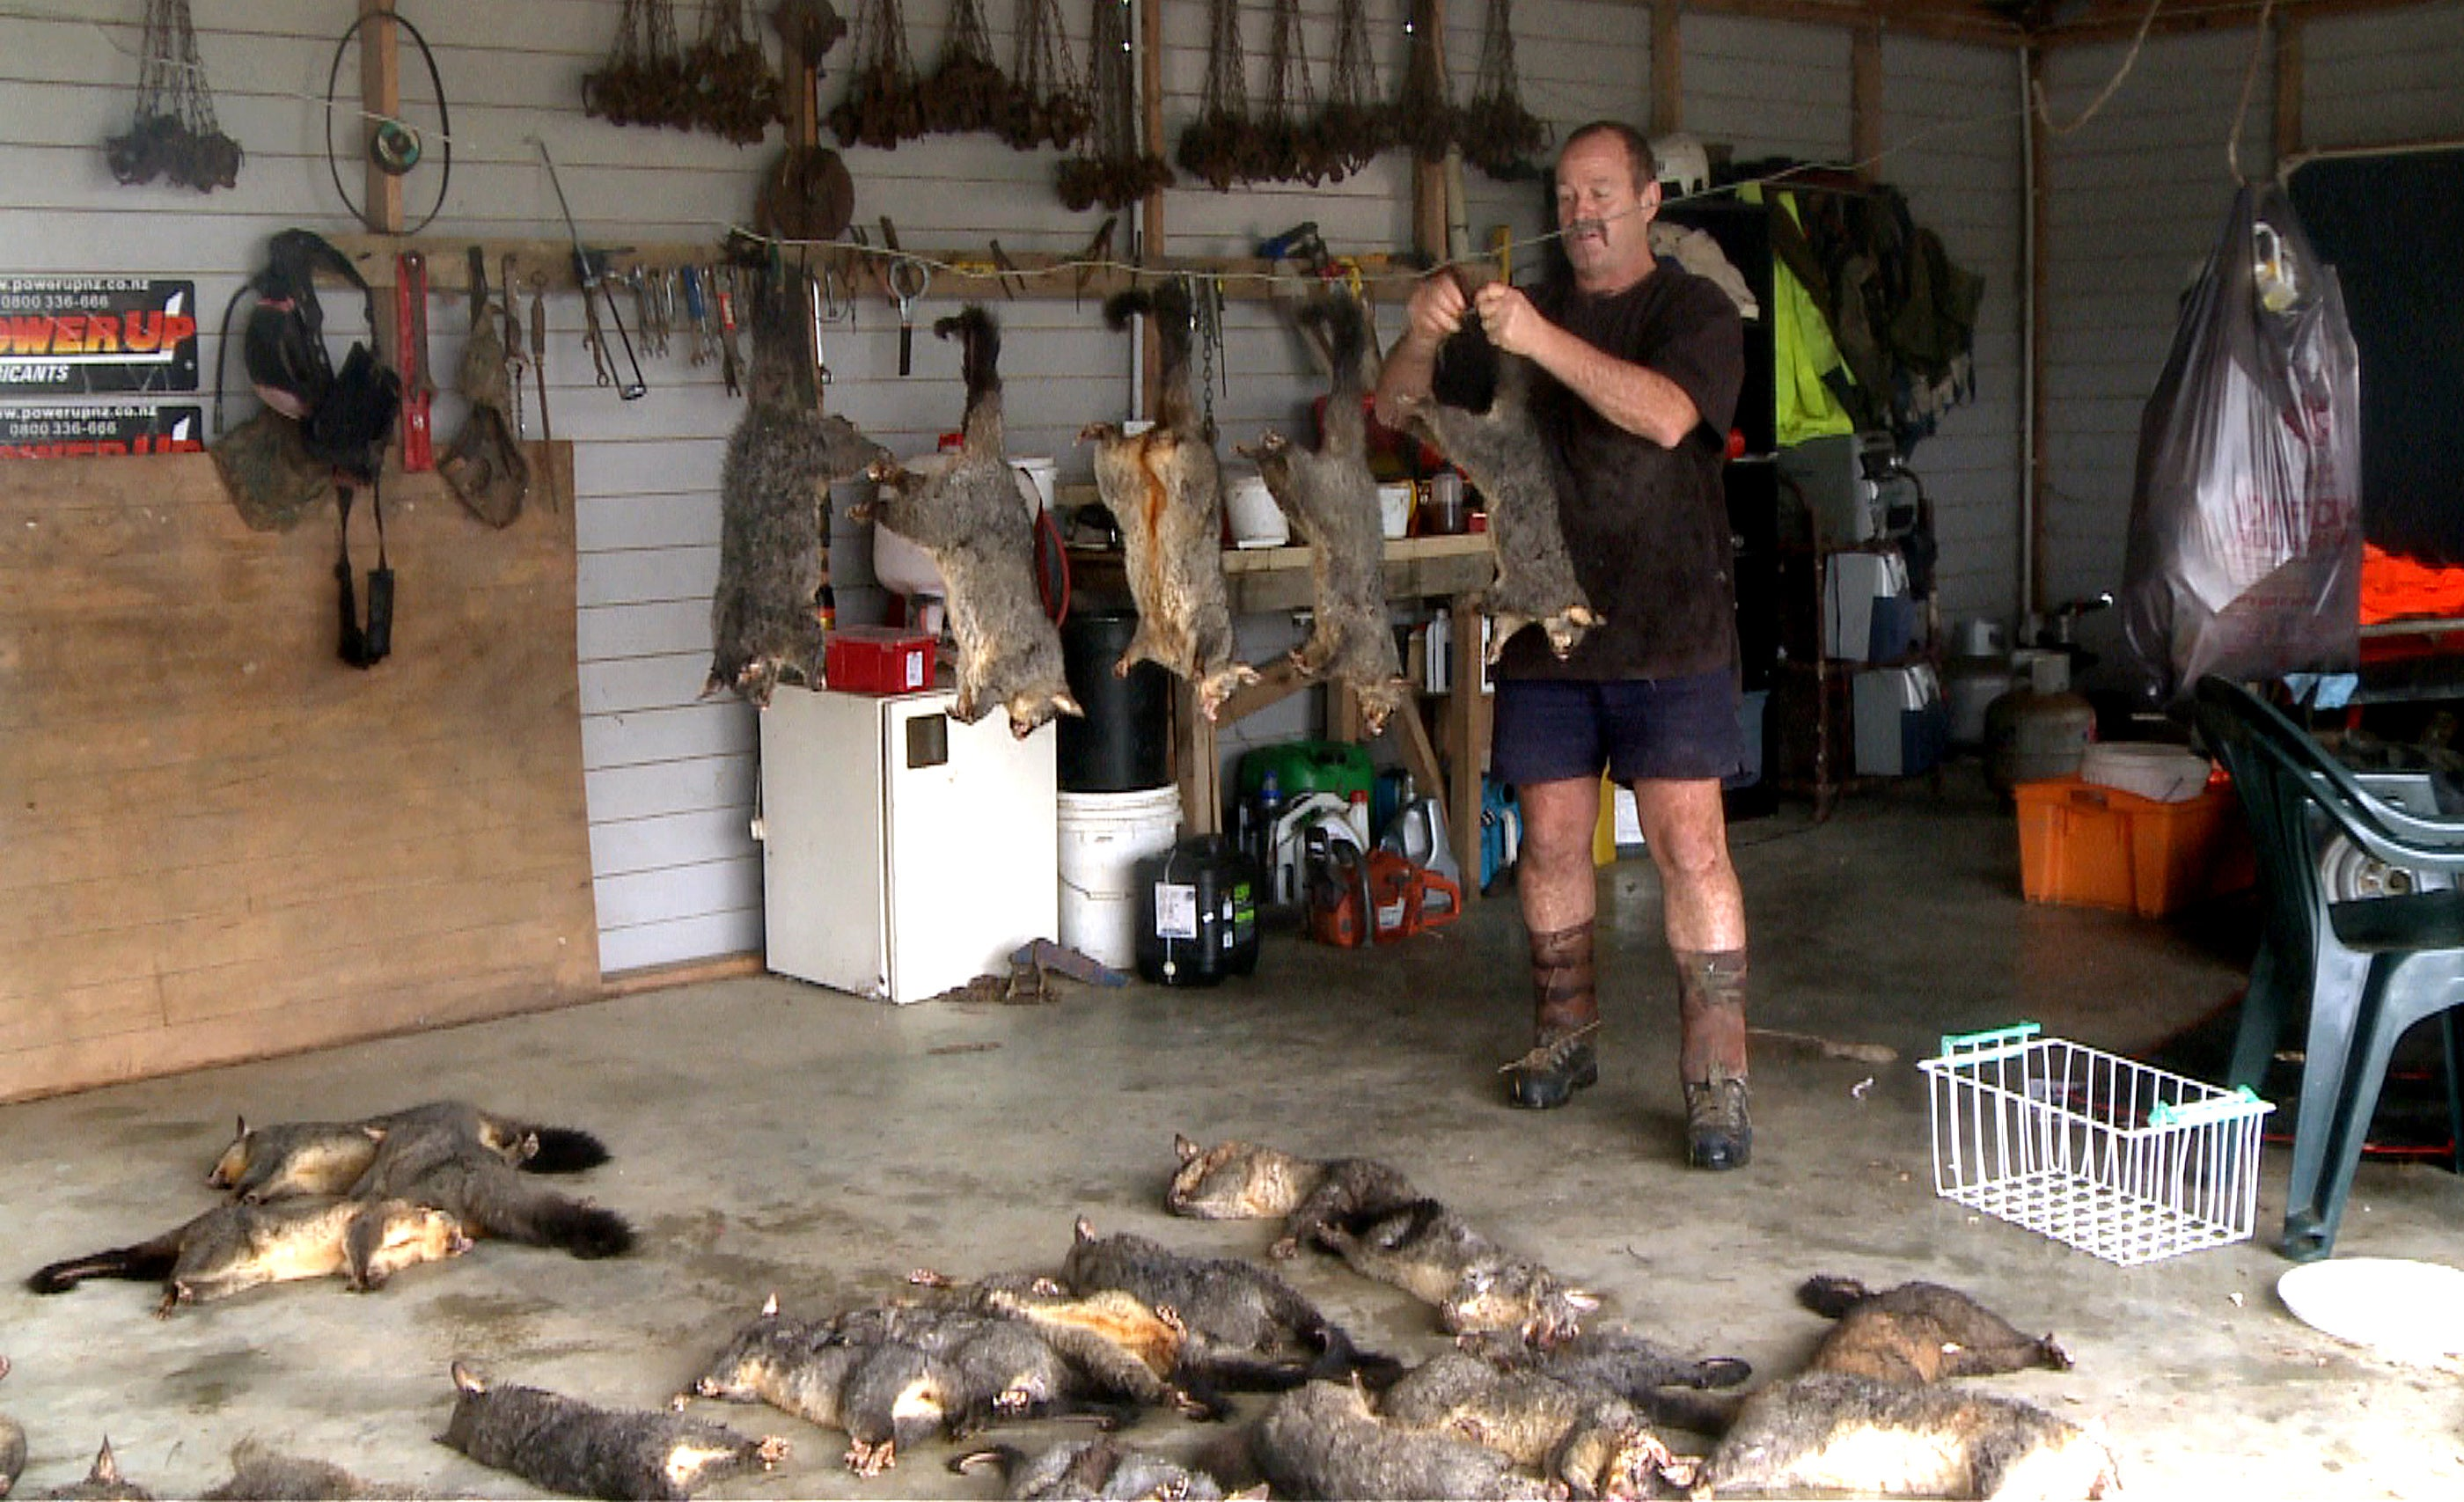 How To Get Rid Of A Possum In Your Garage behind new zealand's wild plan to purge all pests